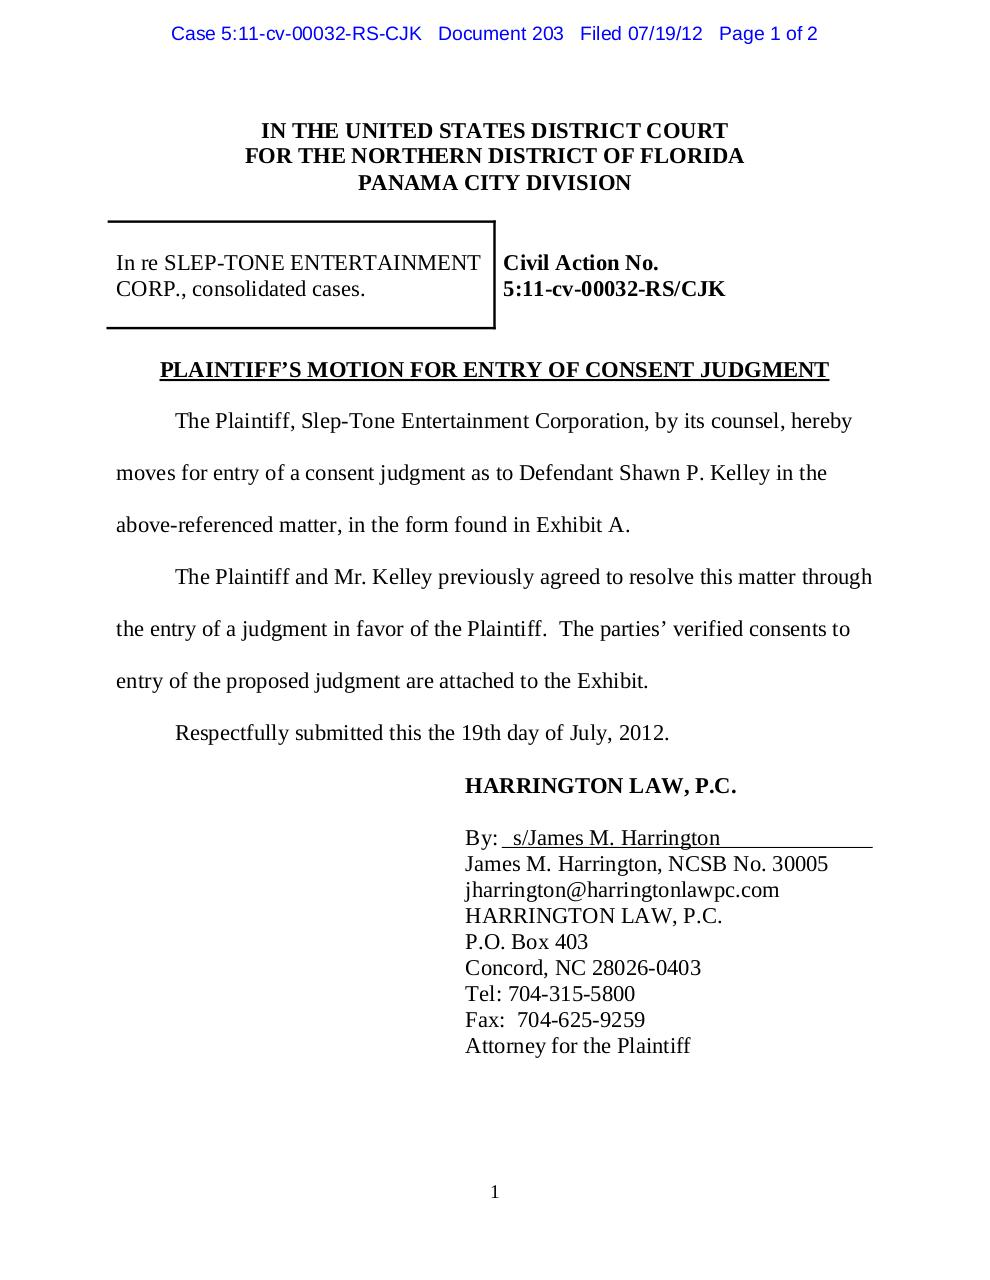 Panama 203 Plaintiff's motion for entry of consent judgment re Shawn P. Kelley.pdf - page 1/2